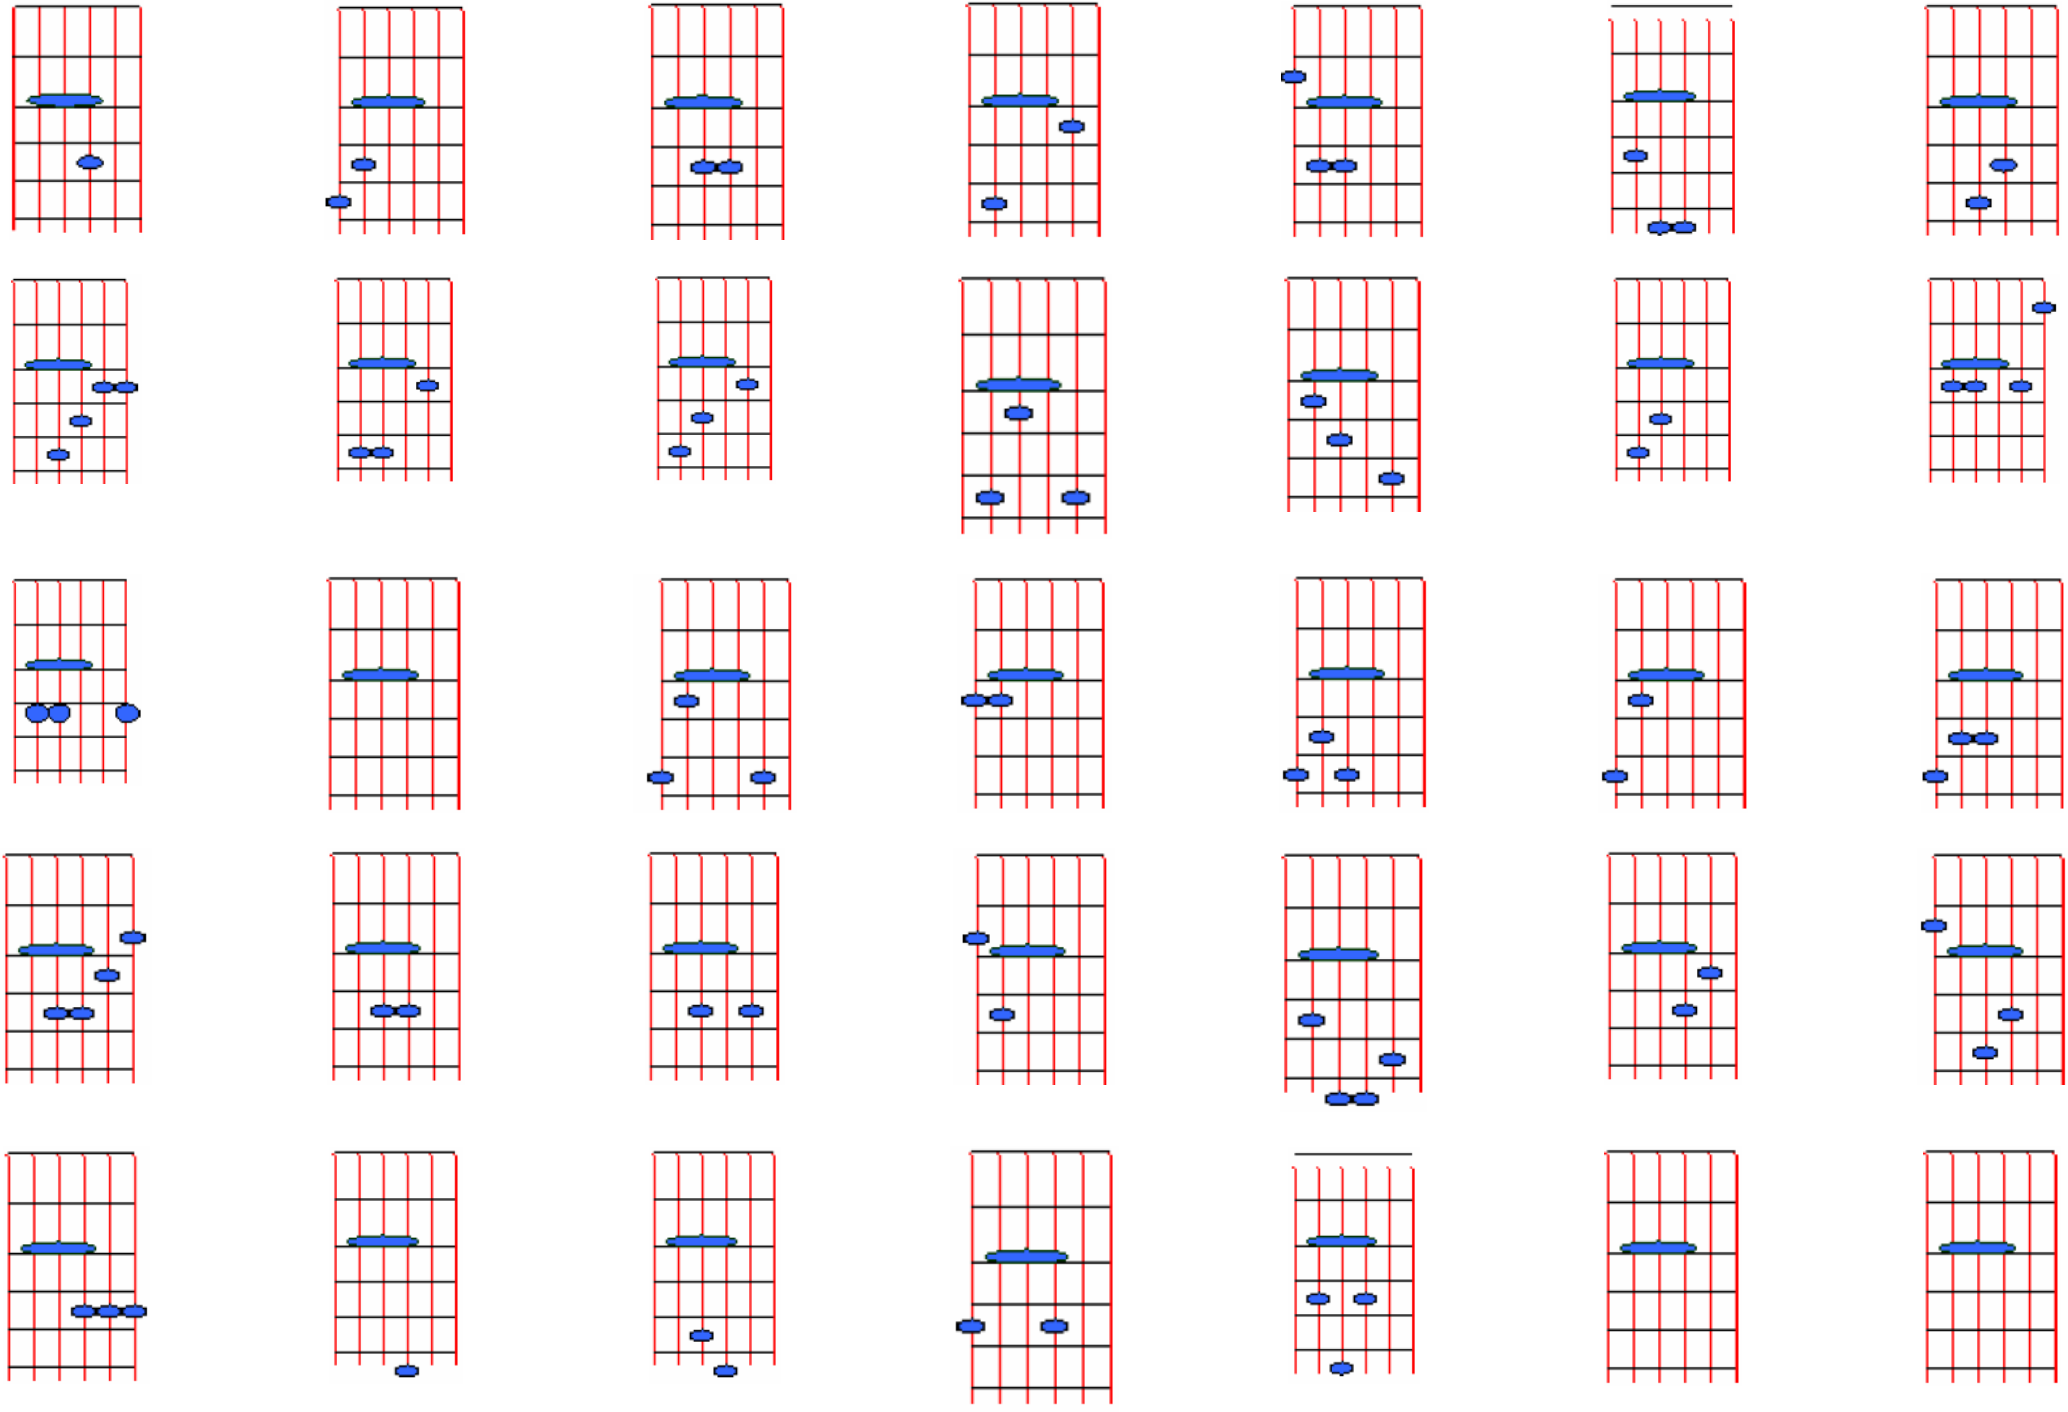 Guitar Chord F  F sharp major at CHORDC